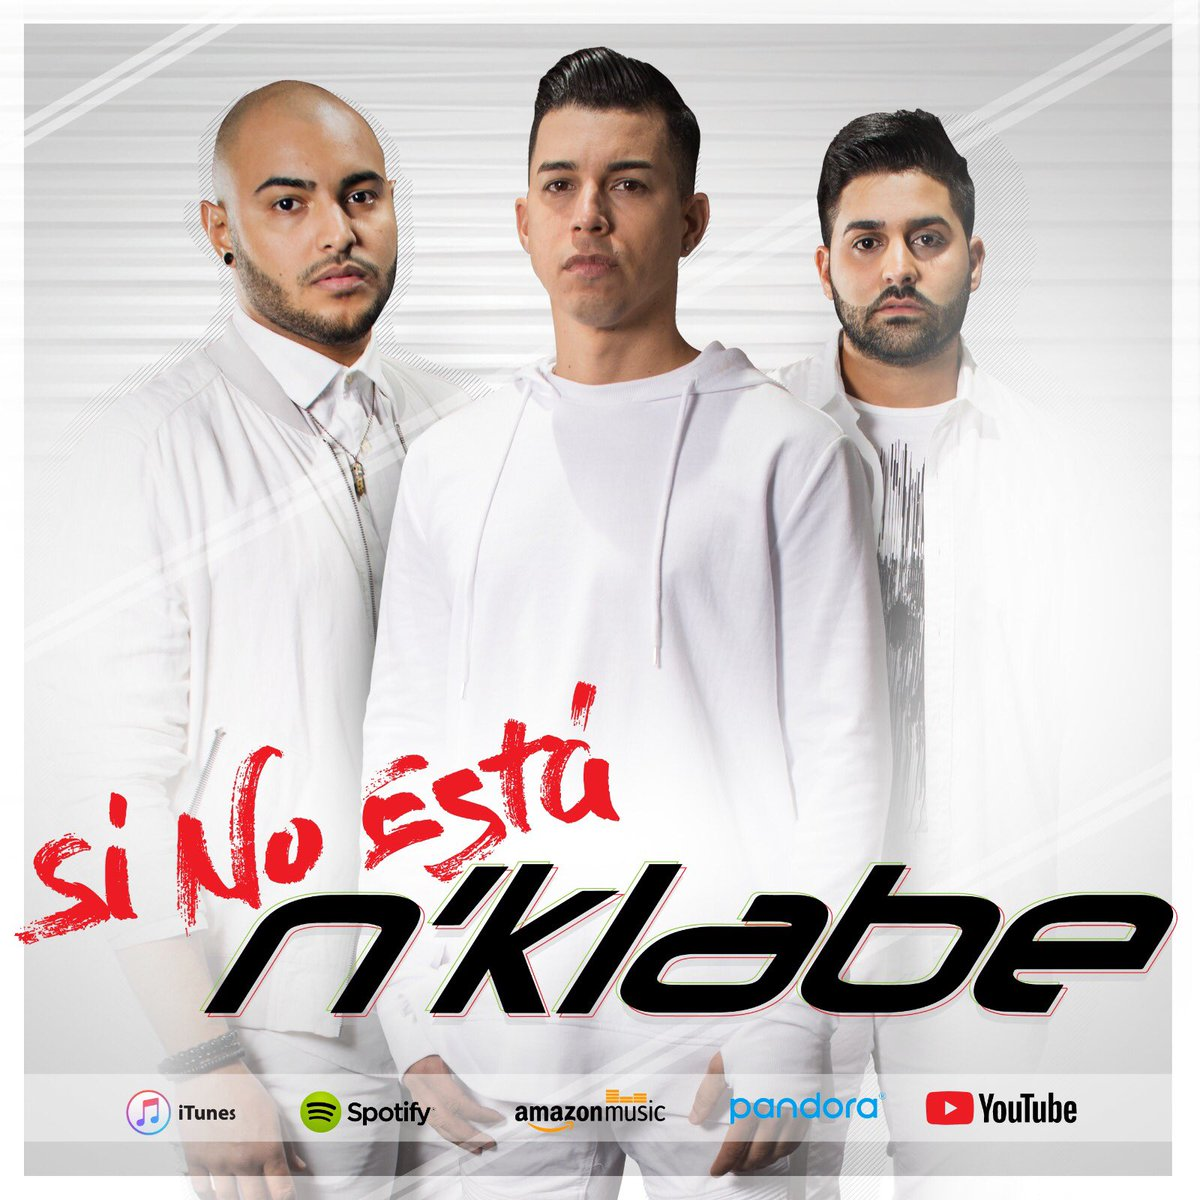 Pronto... Coming soon...  #SiNoEstaNKlabe https://t.co/iRDNxAoCCB